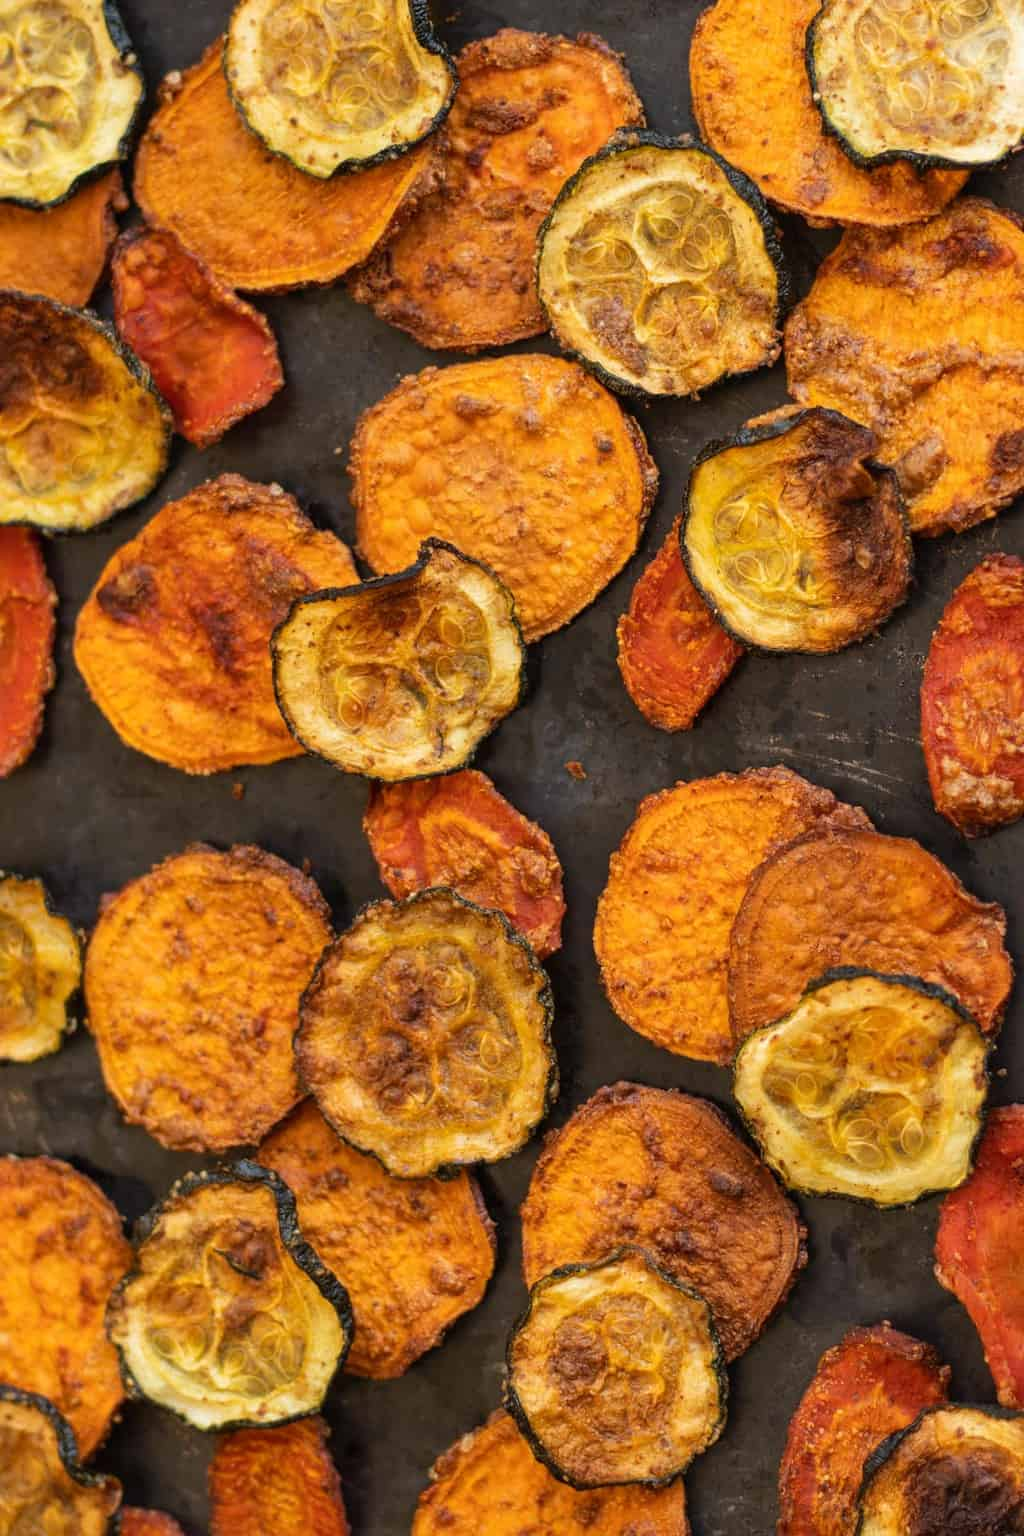 Homemade sweet potato, carrot and zucchini chips on baking sheet